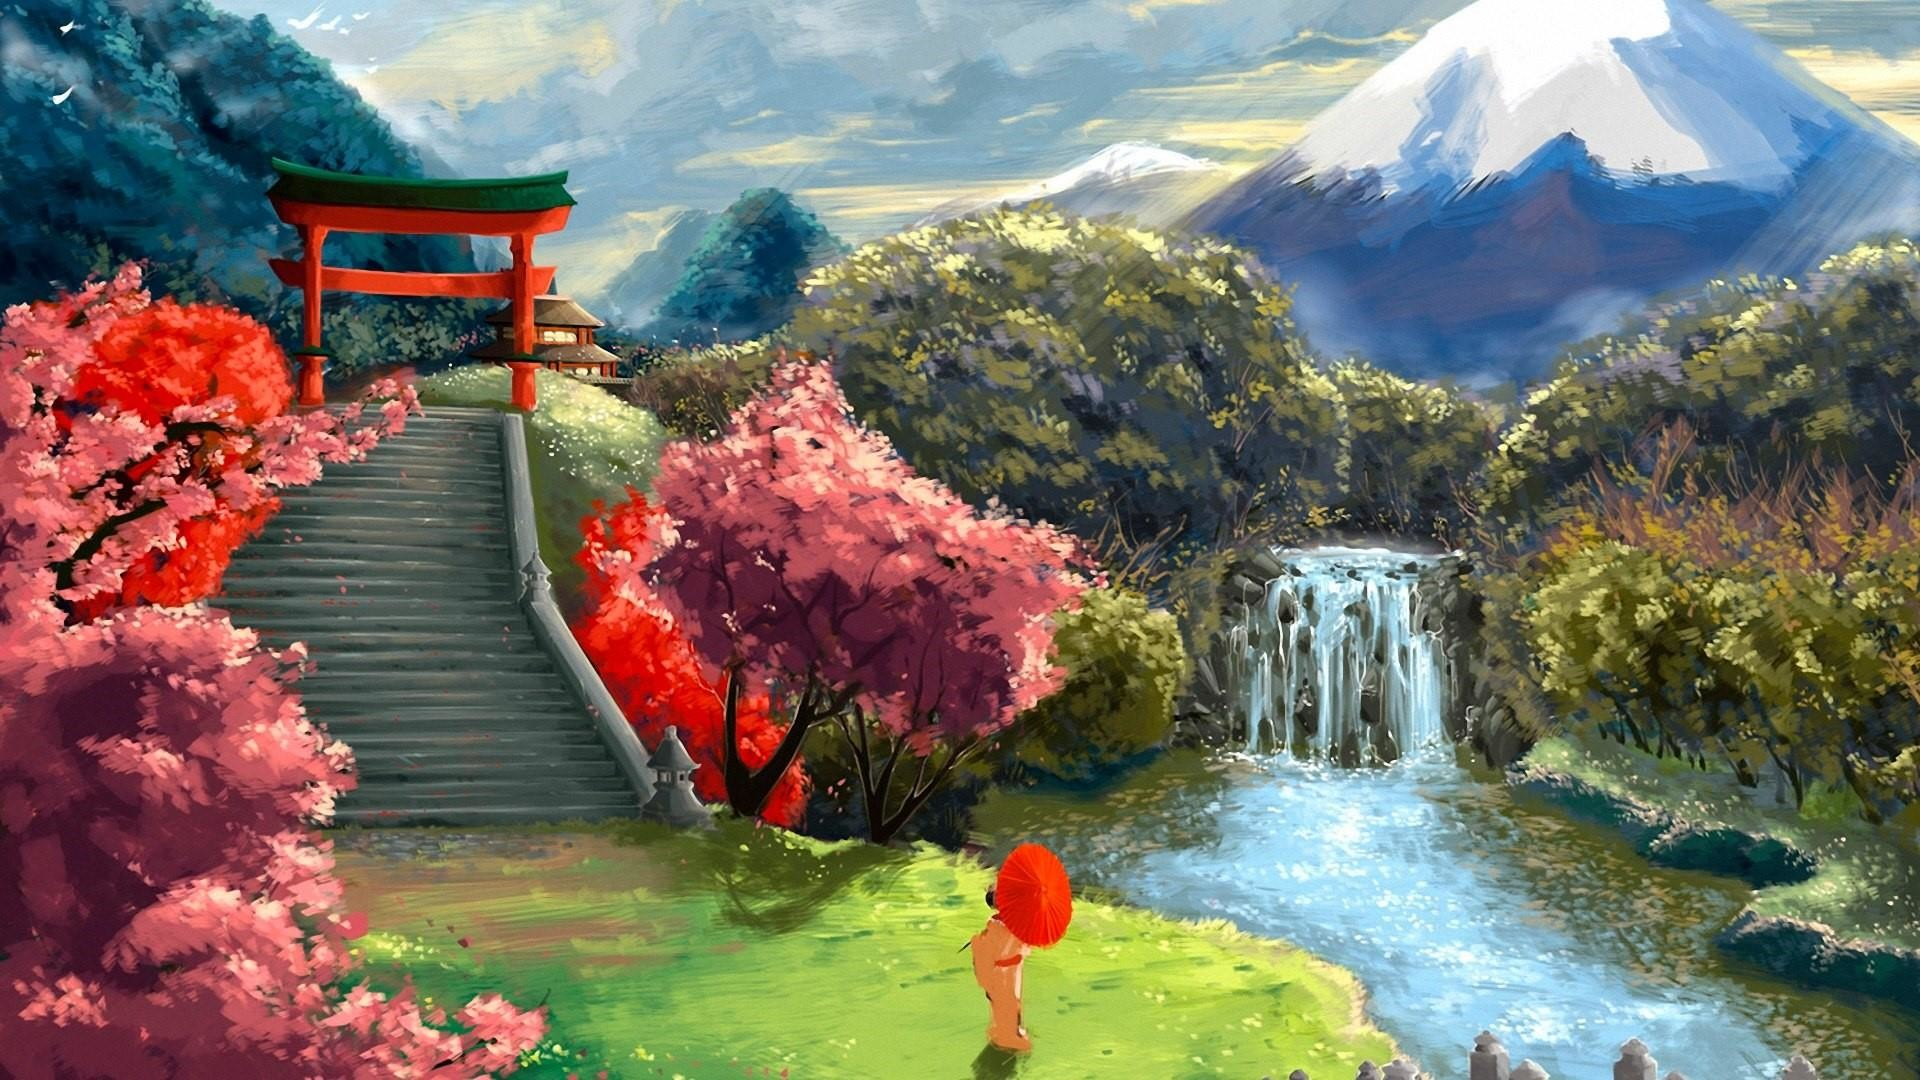 Res: 1920x1080, Japanese Garden Landscape - Painting Art Wallpaper | Wallpaper Studio 10 |  Tens of thousands HD and UltraHD wallpapers for Android, Windows and Xbox